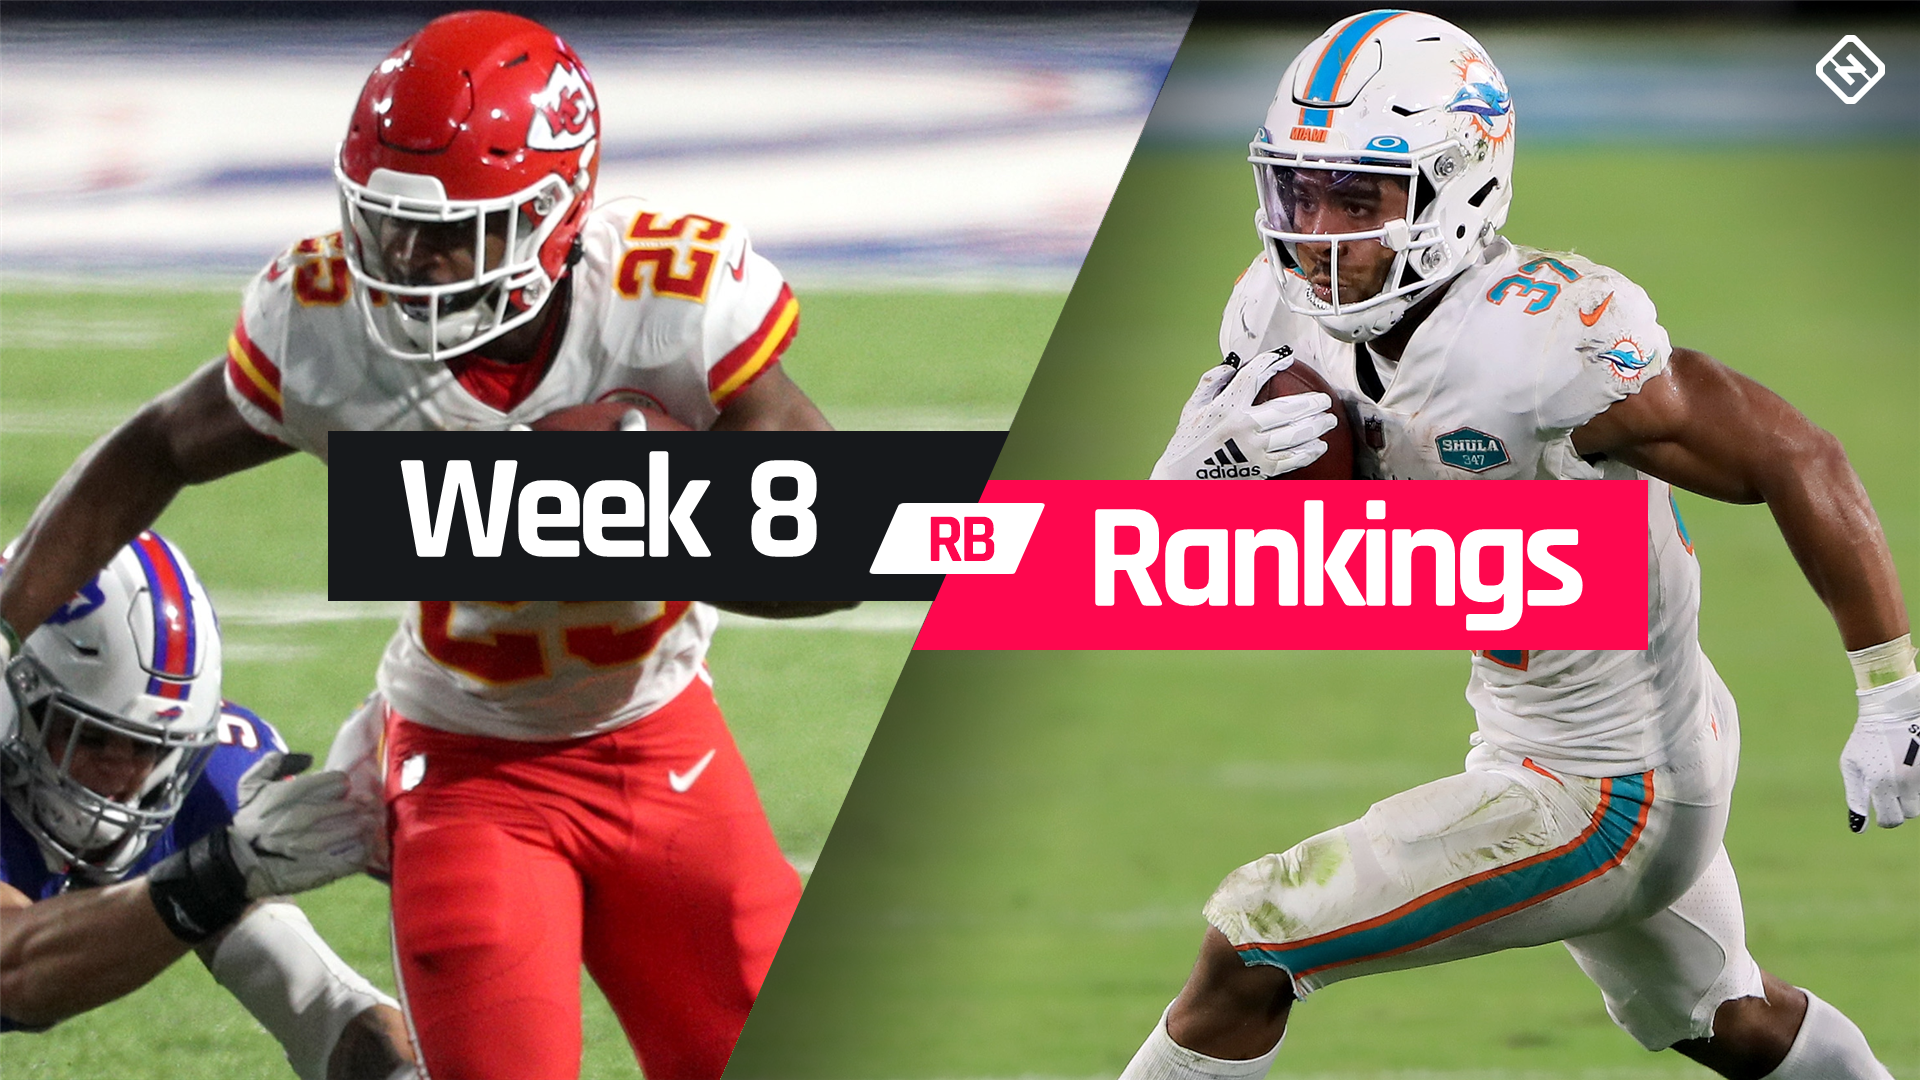 Week 8 Fantasy RB Rankings: Must starts, sleepers, potential busts at running back